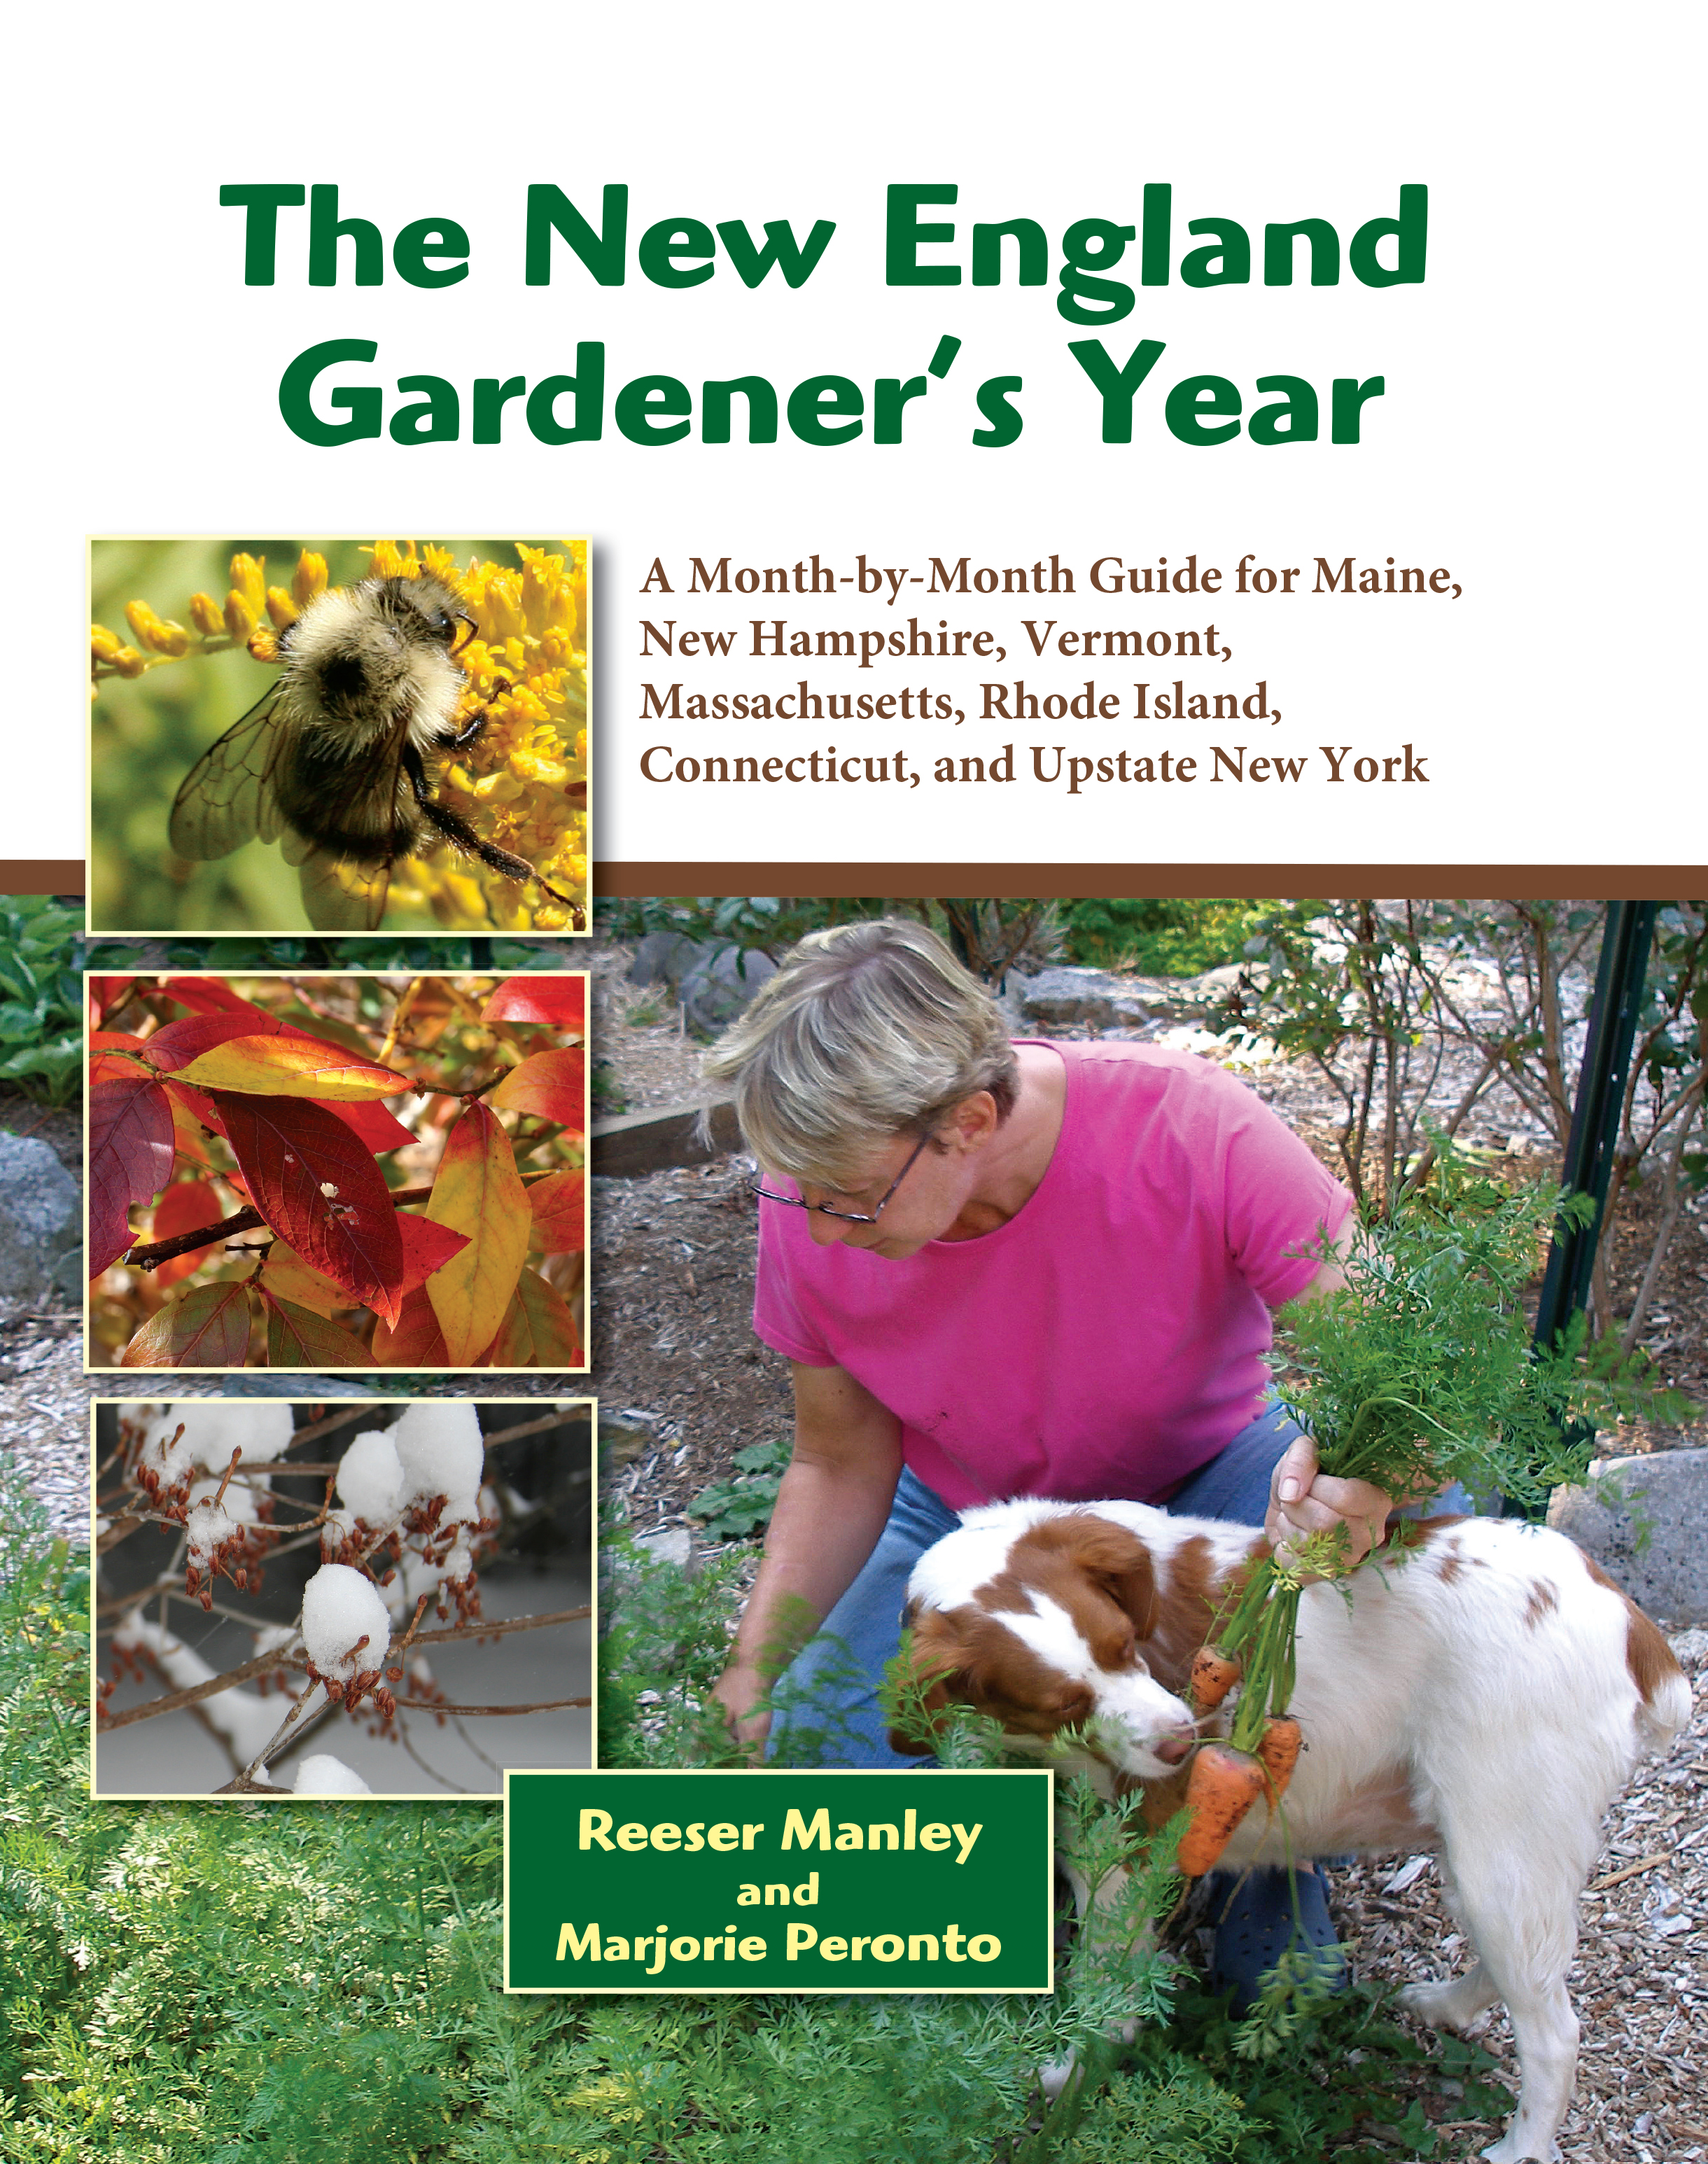 New England Gardener's Year A Month-by-Month Guide for Maine, New Hampshire, Vermont, Massachusetts, Rhode Island, Connecticut, and Upstate New York